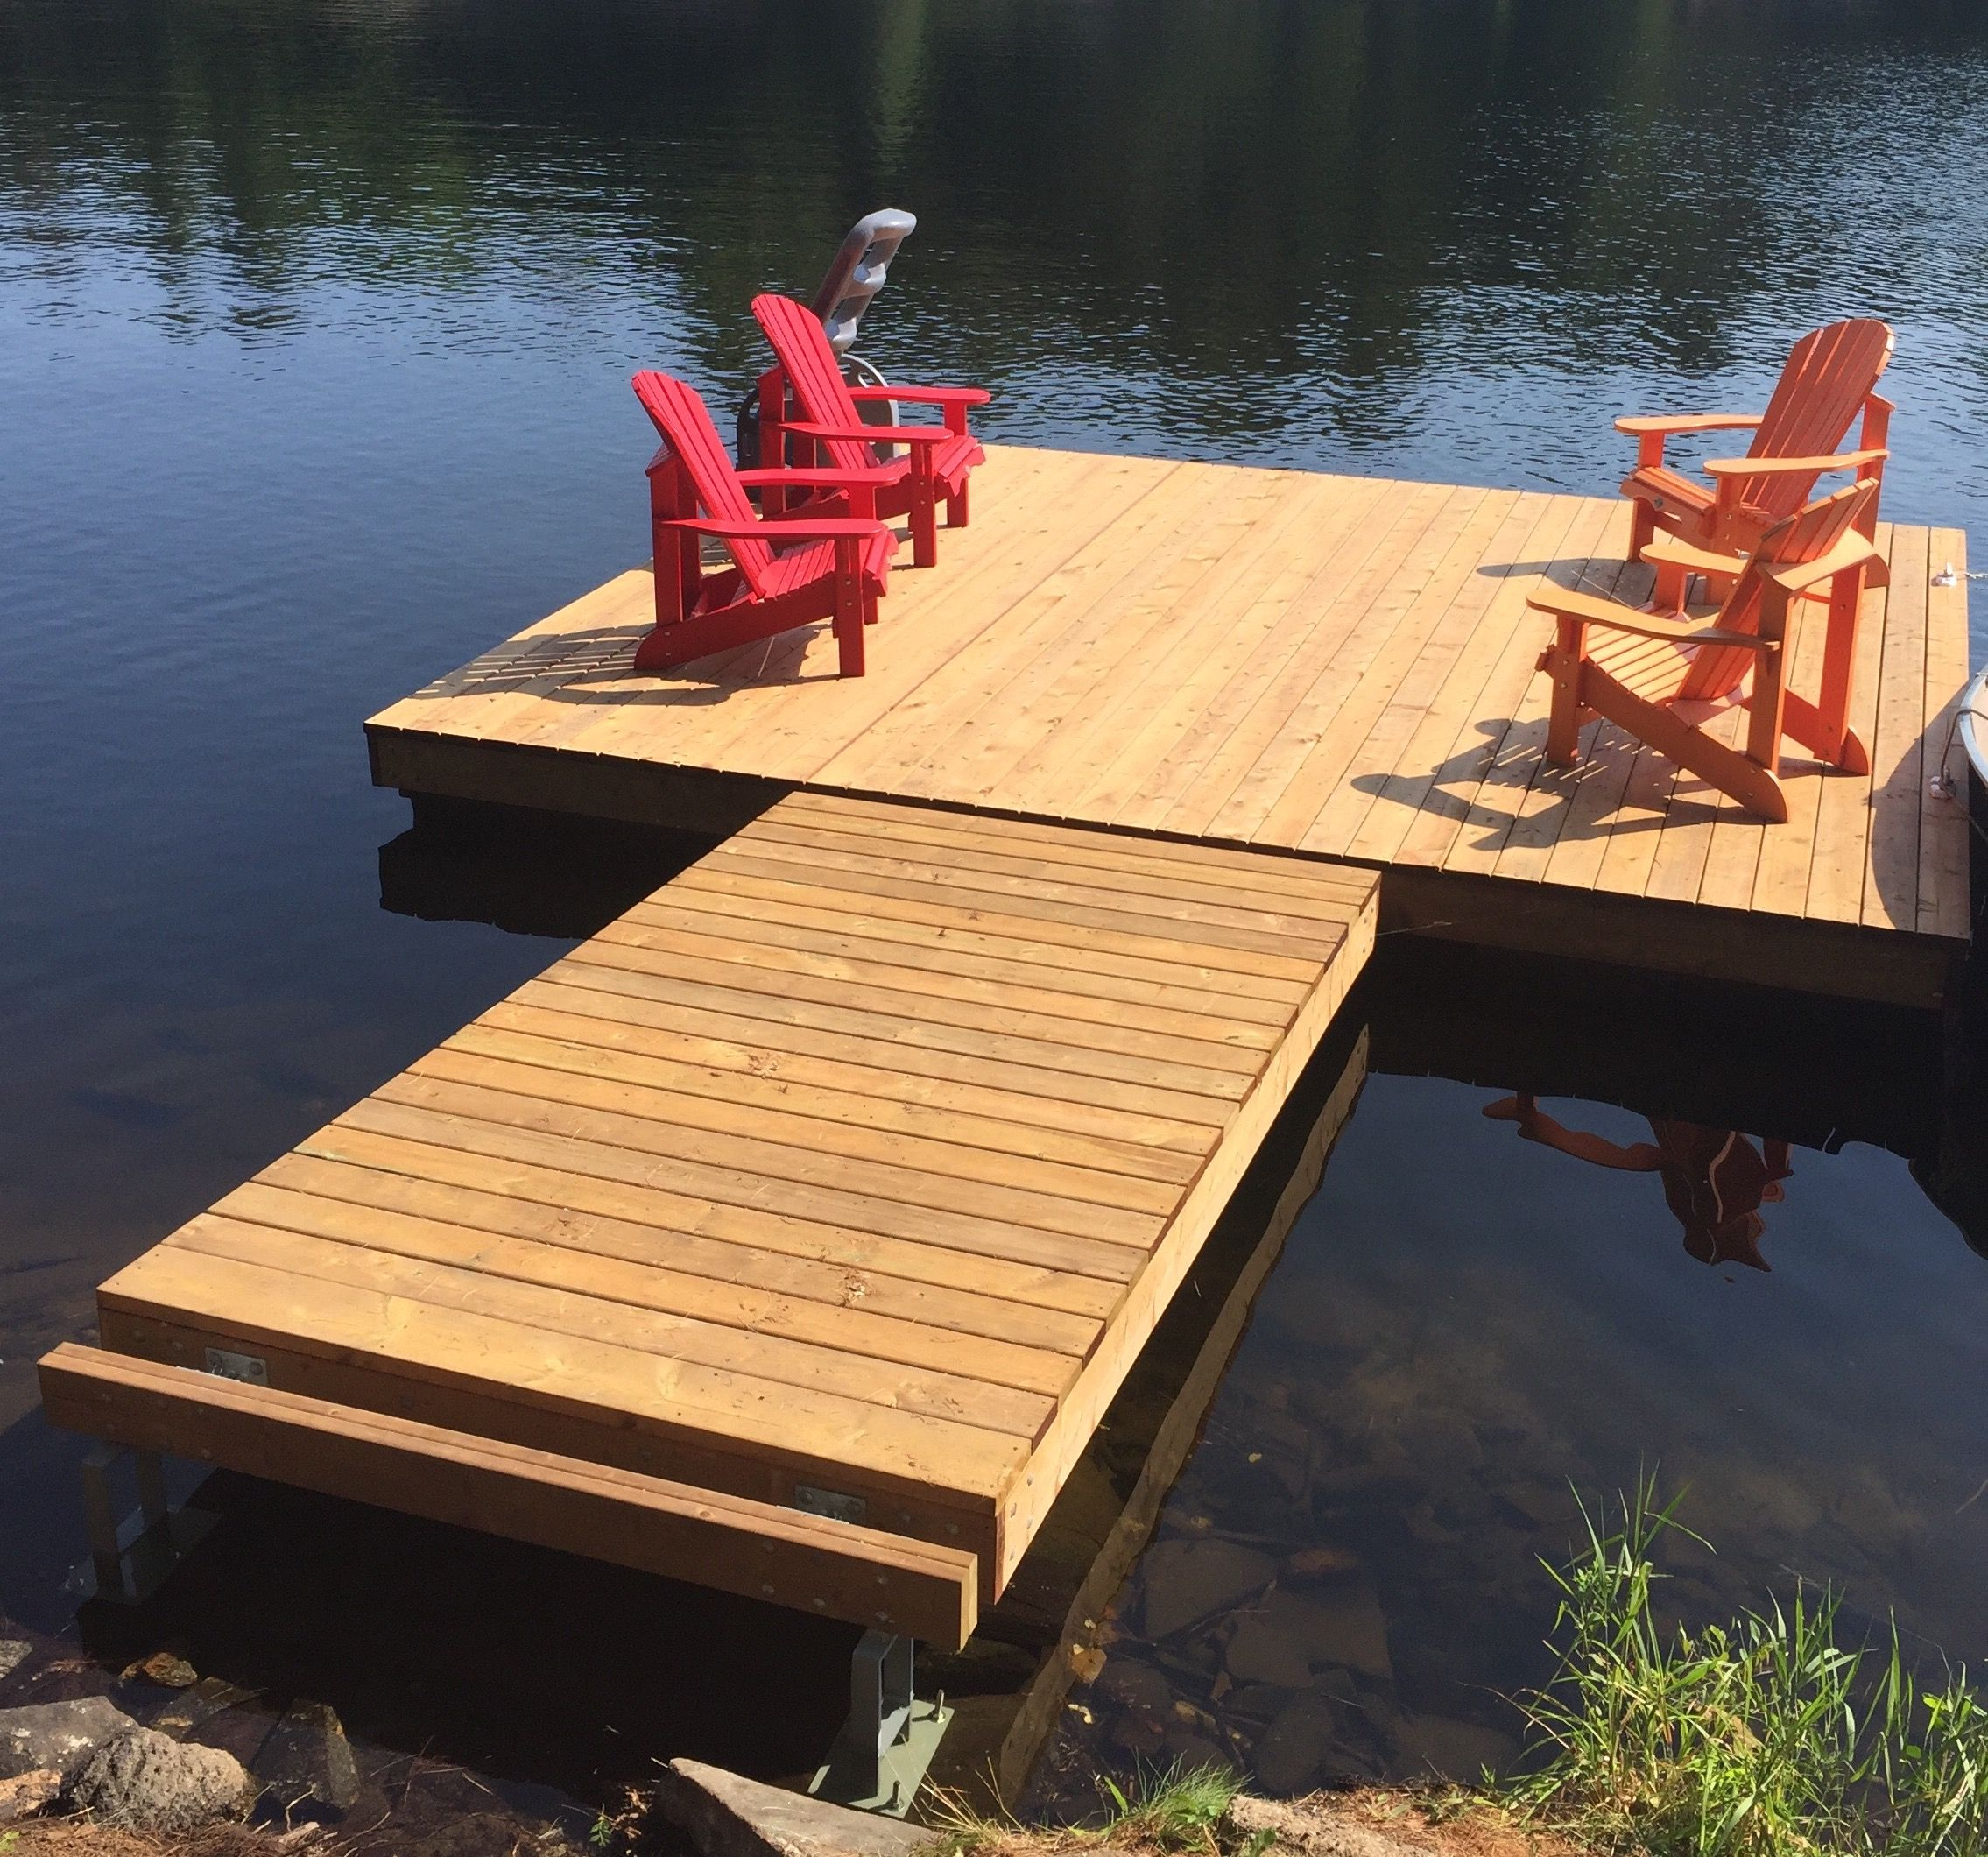 Completed floating dock and ramp with ramp secured to